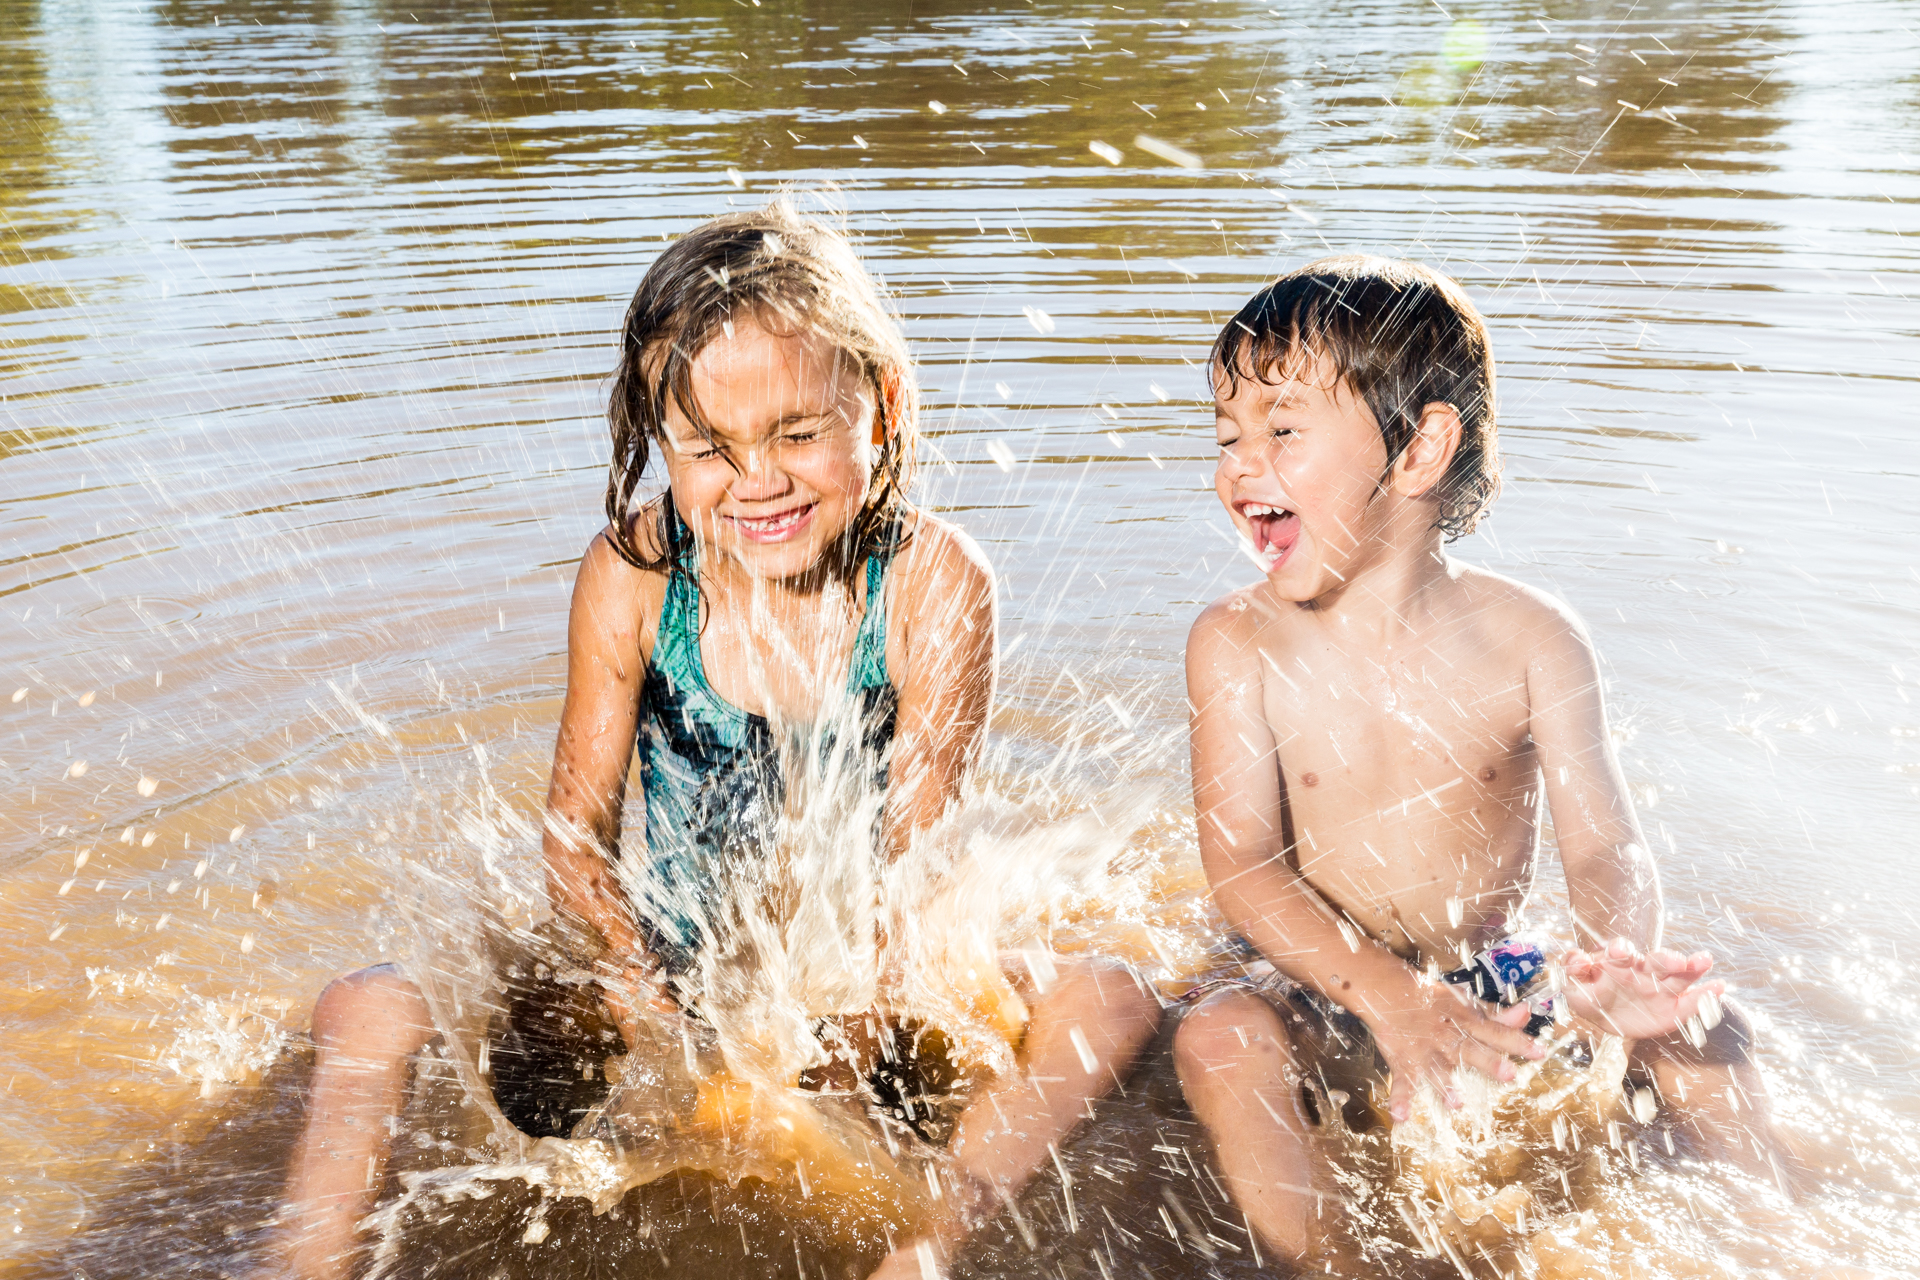 I found Pearl and Lachlan splashing in the river at the north of town and took this photo for the paper. I got very wet.